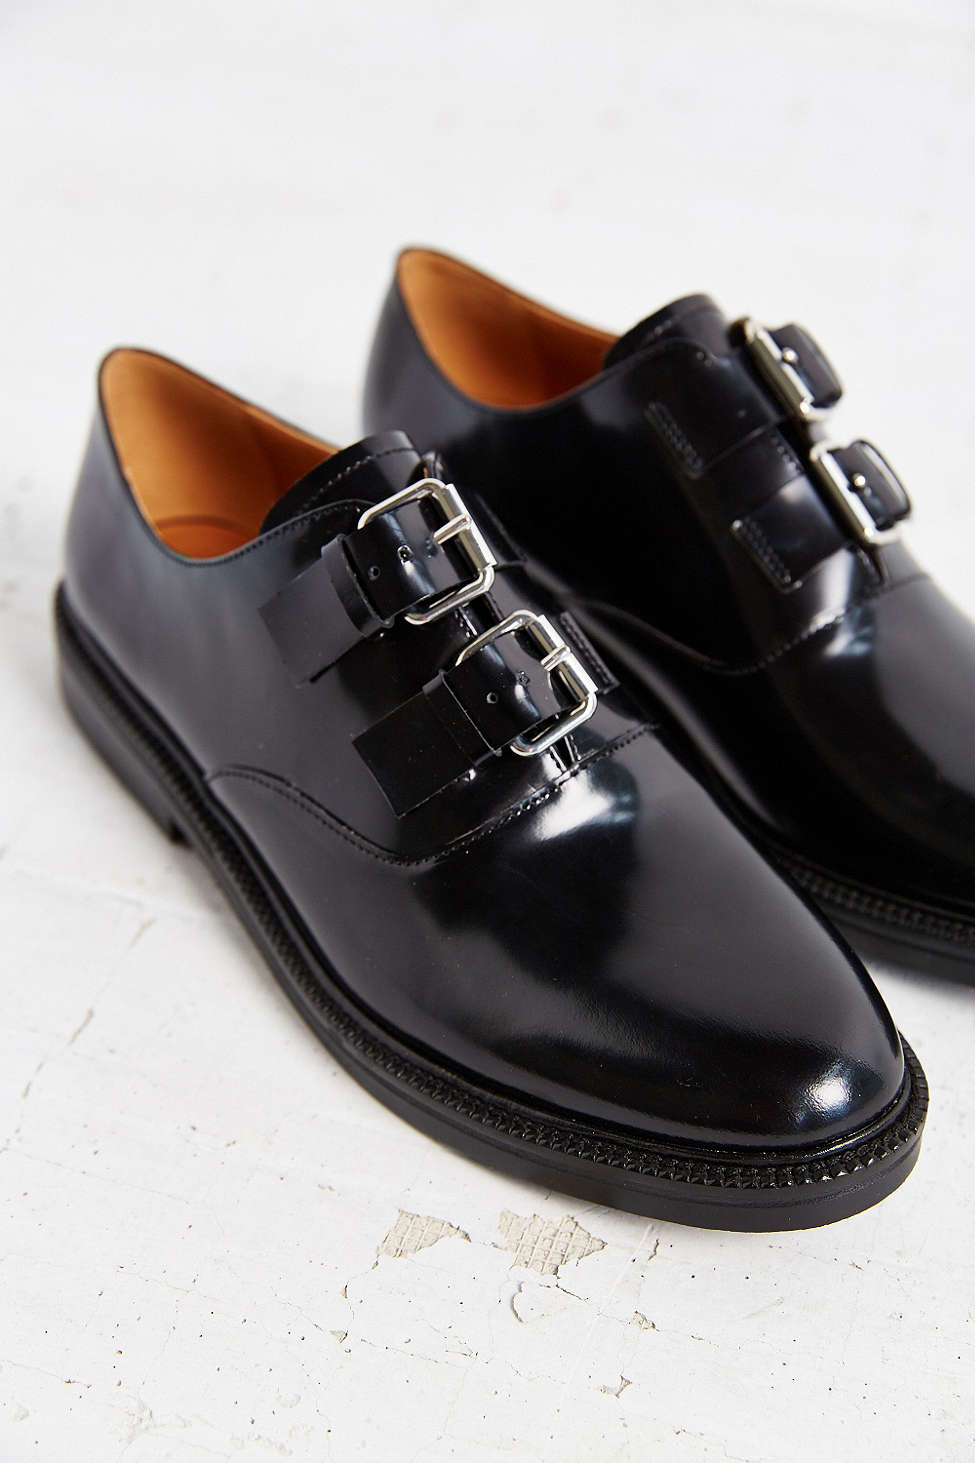 Lyst Urban Outfitters Aster Double Buckle Oxford In Black